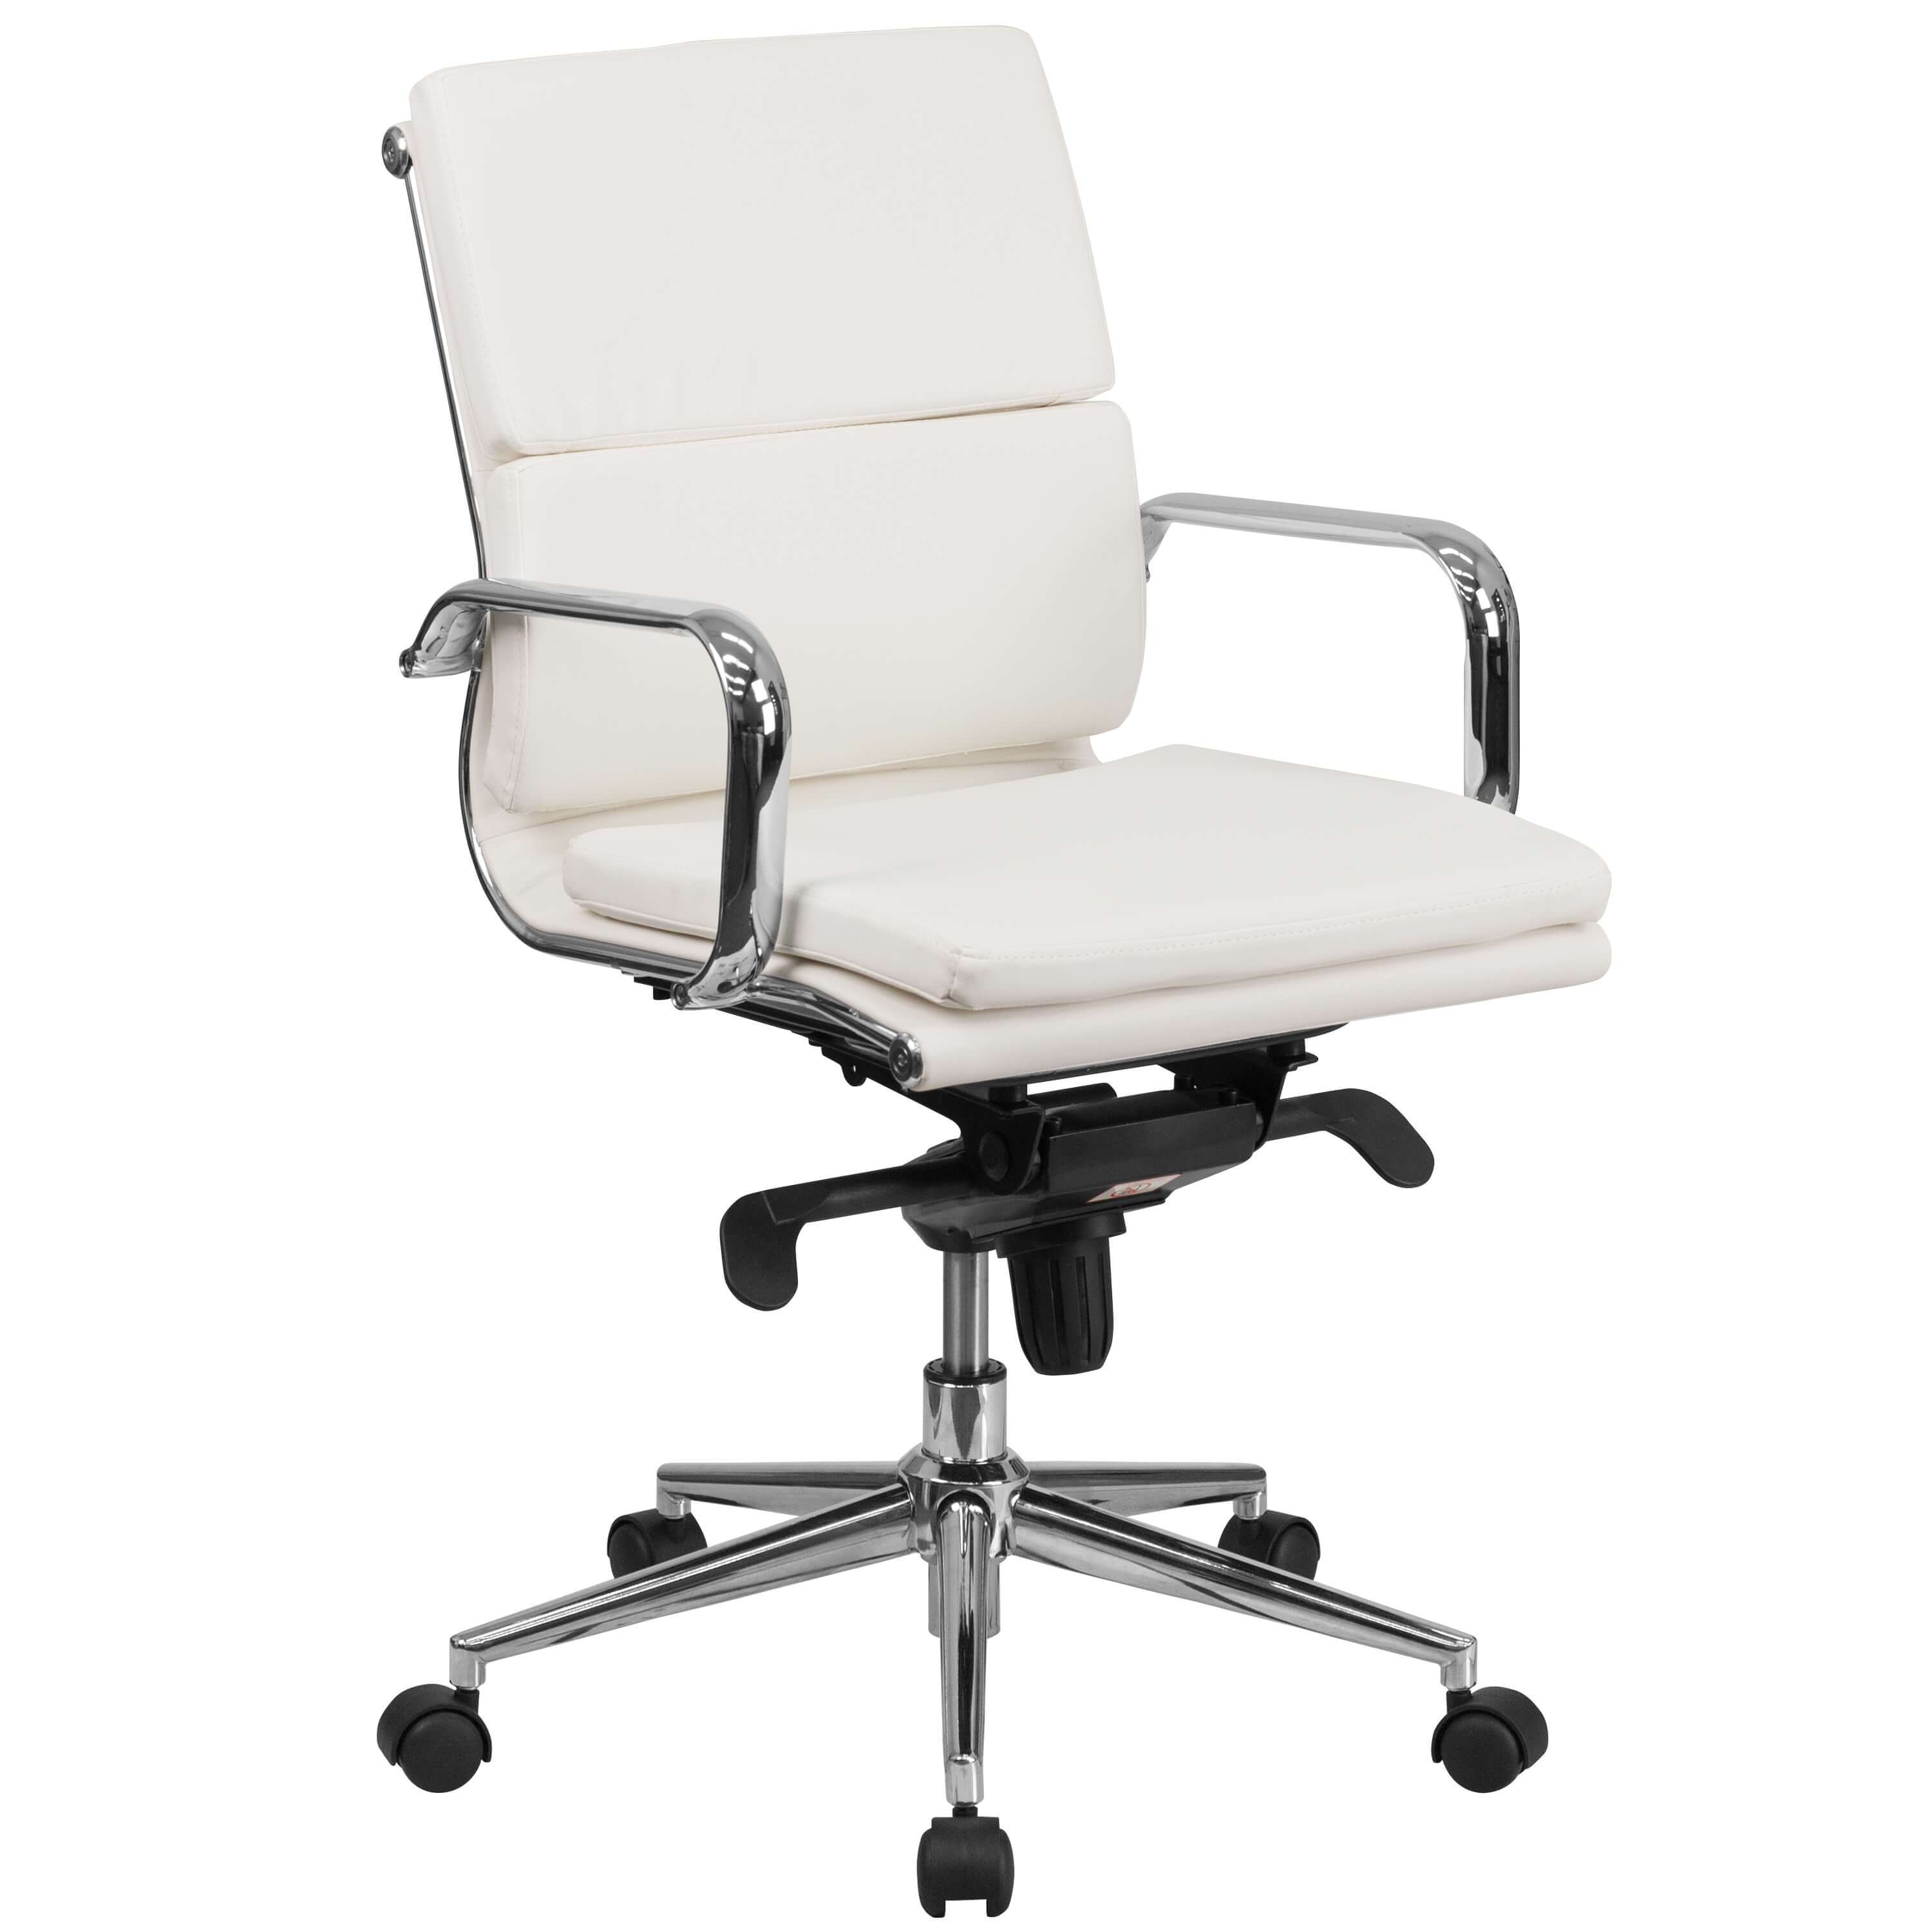 fun desk chairs chair ergonomic review queen star slim and tall leather